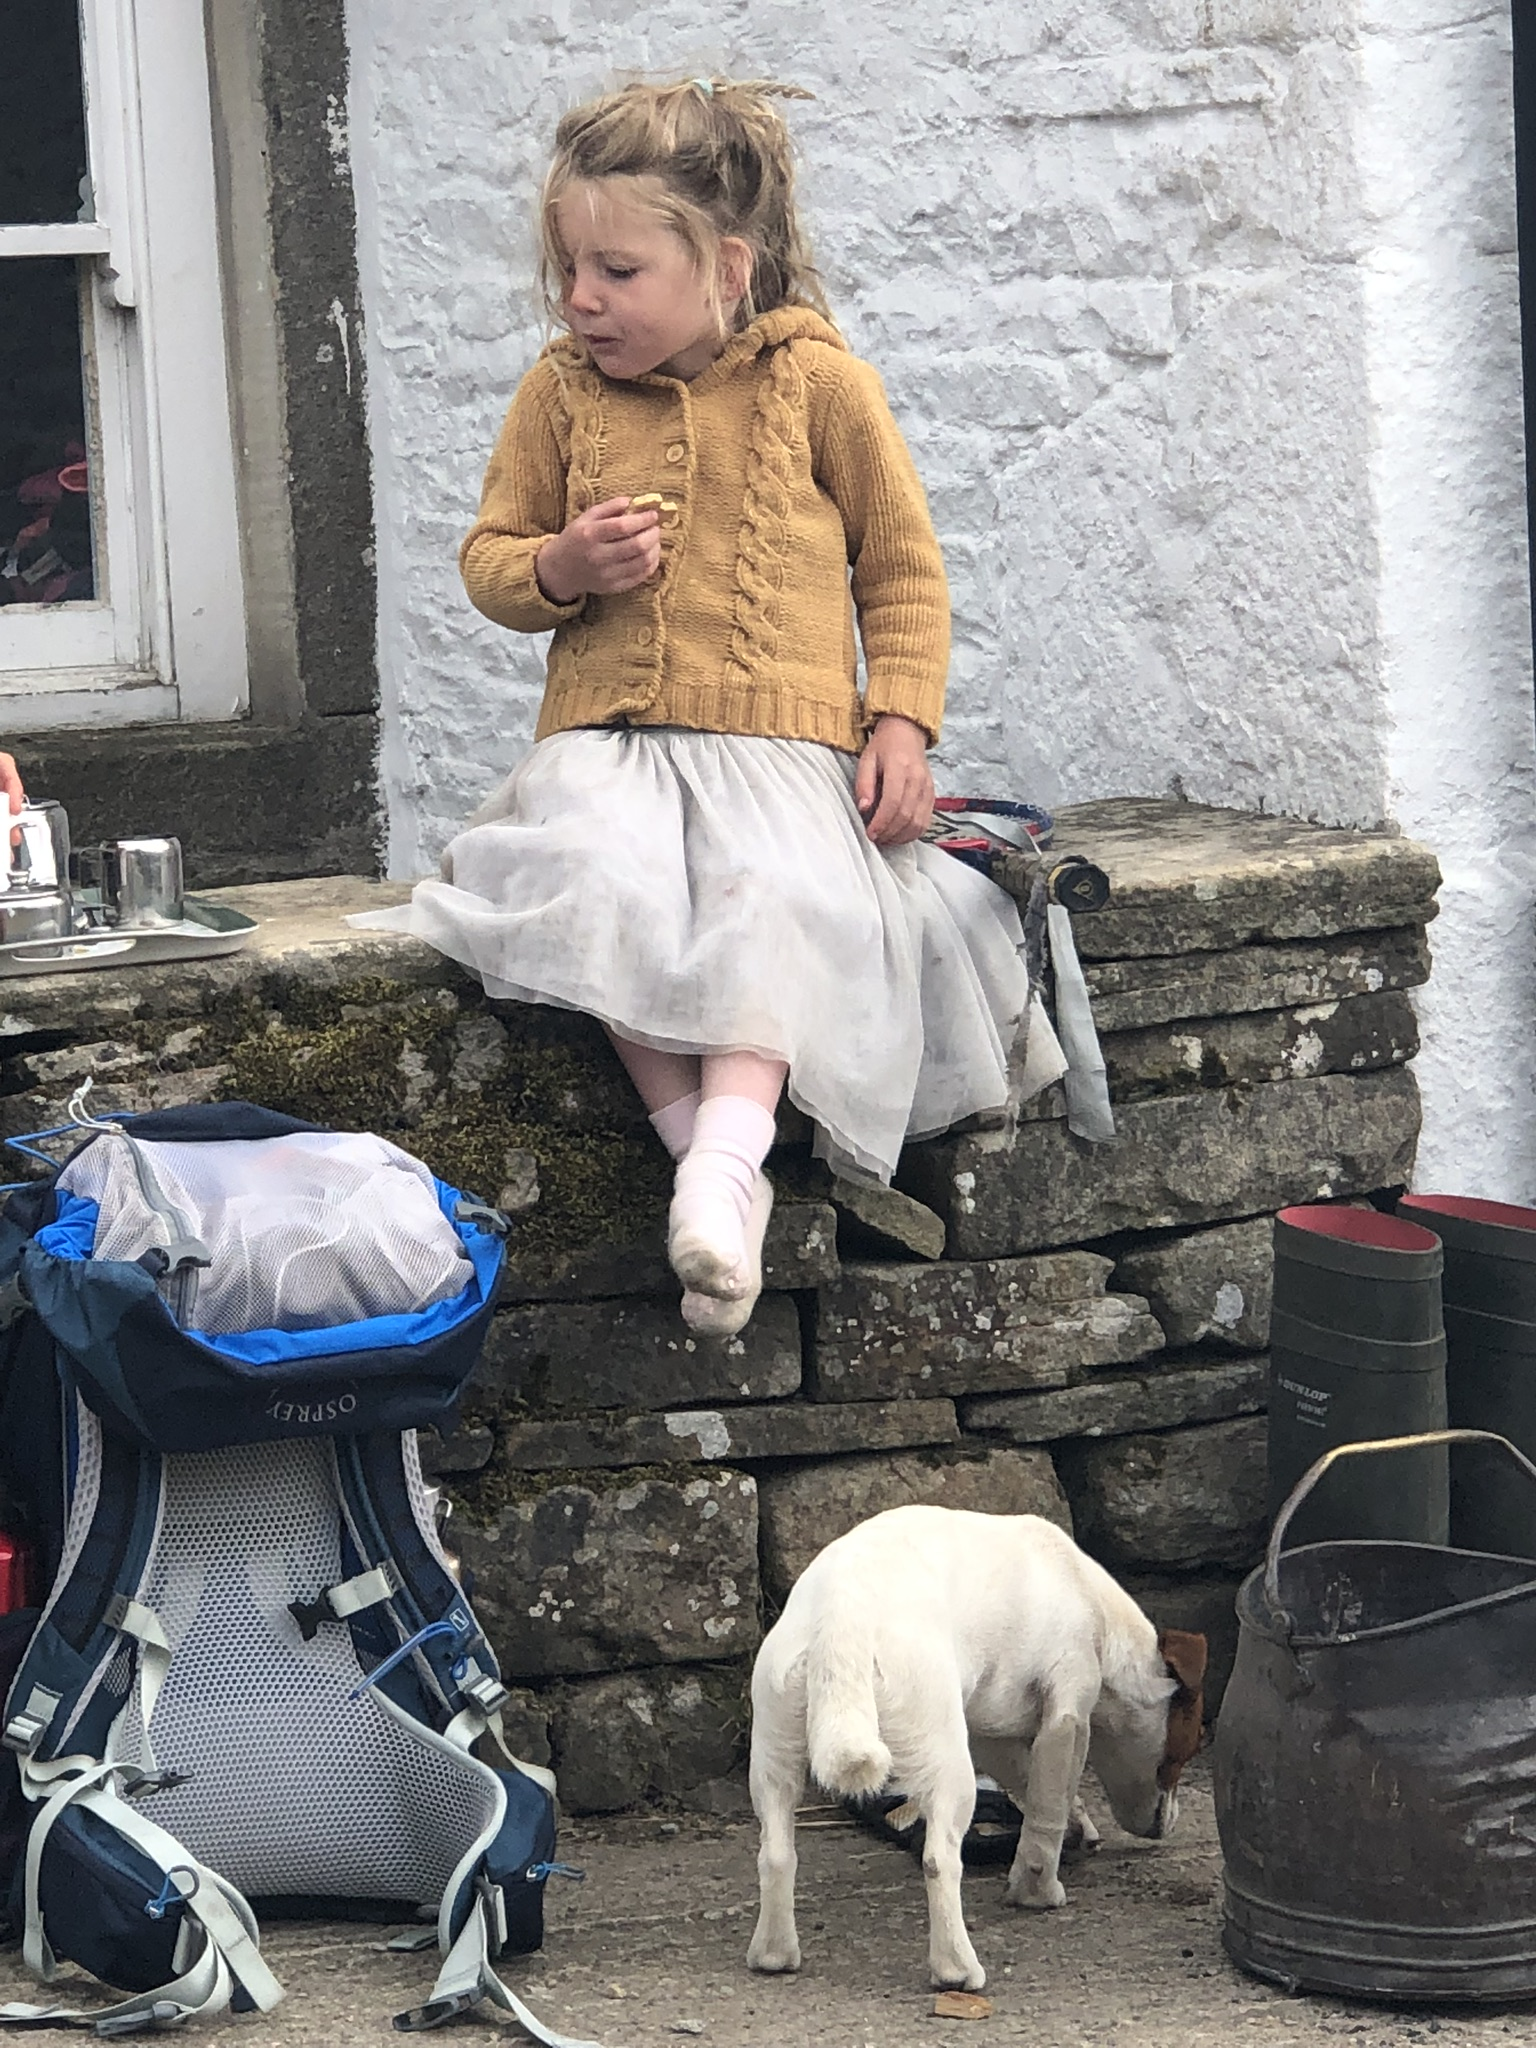 Young Clemy Owen shares a scone with guests as her dog happily picks up the scraps.